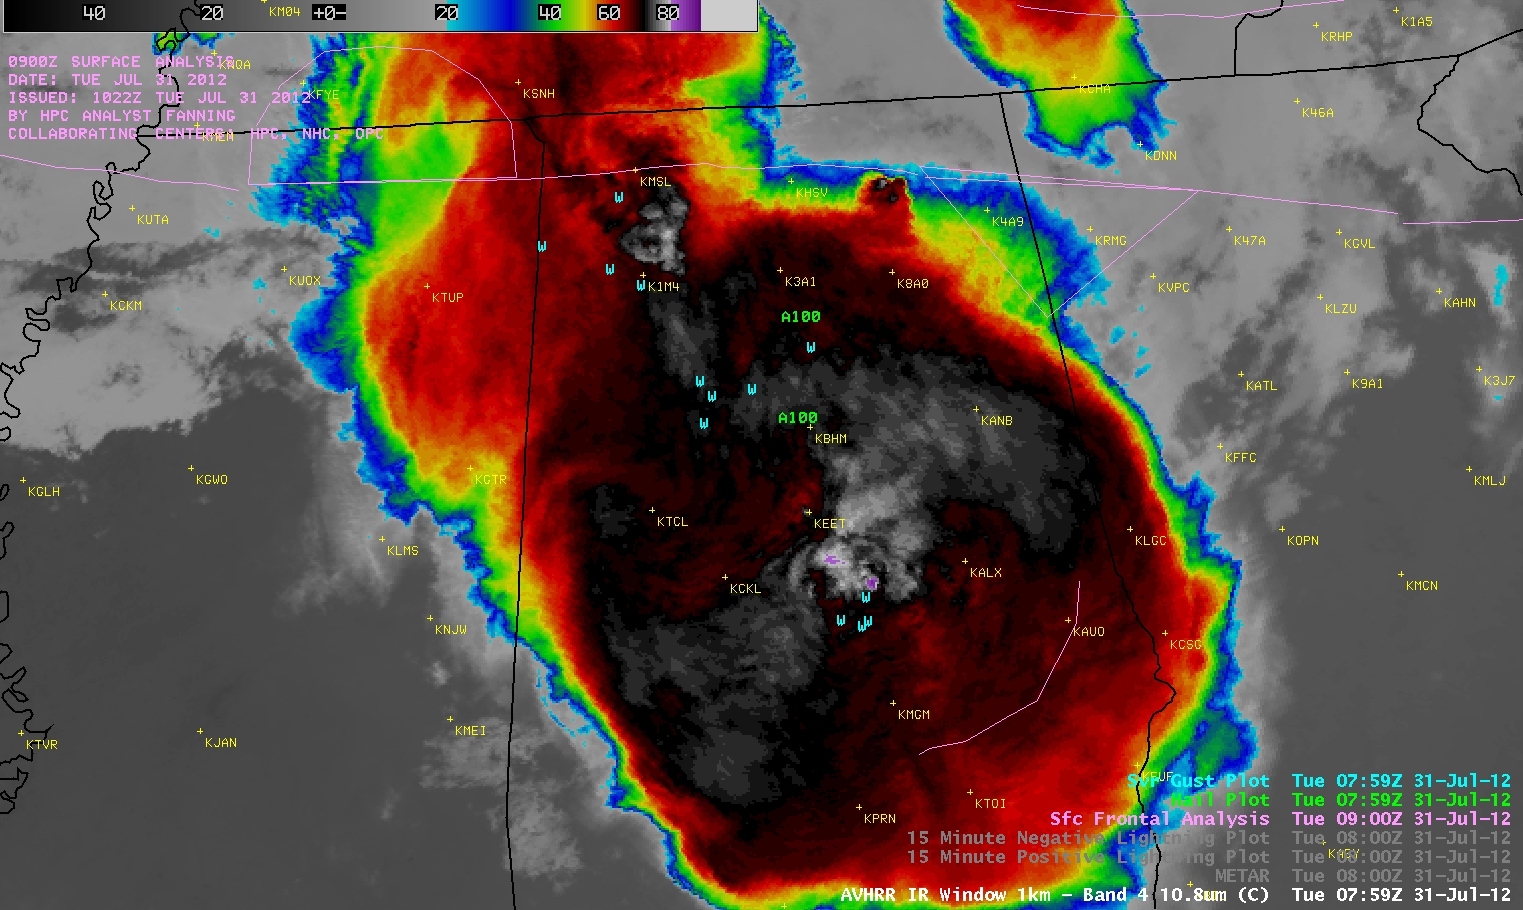 POES AVHRR 10.8 µm IR image + SPC storm reports of hail and damaging winds